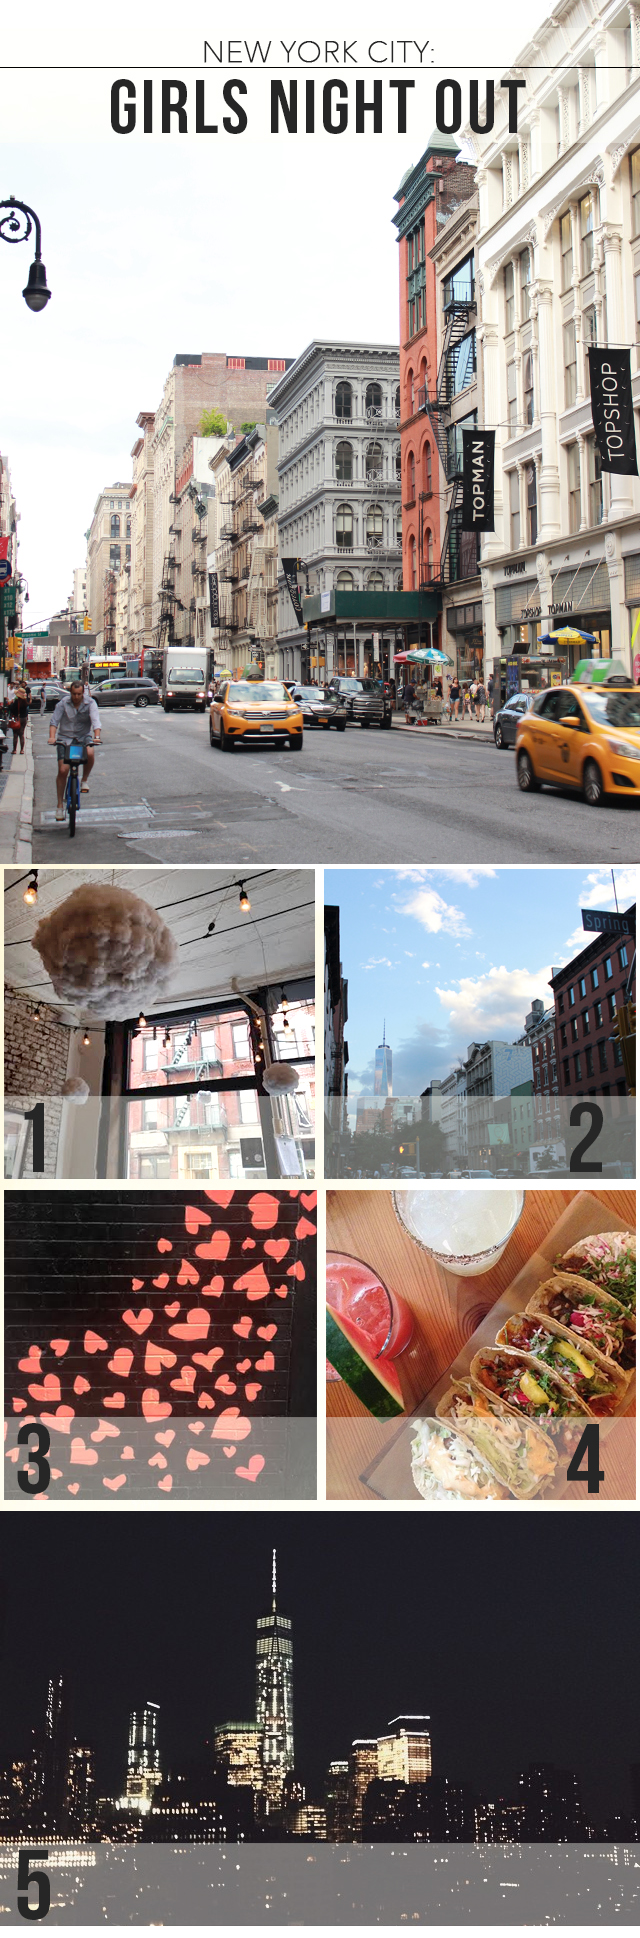 Insiders Guide to NYC: What to do on a Girl's Night Out